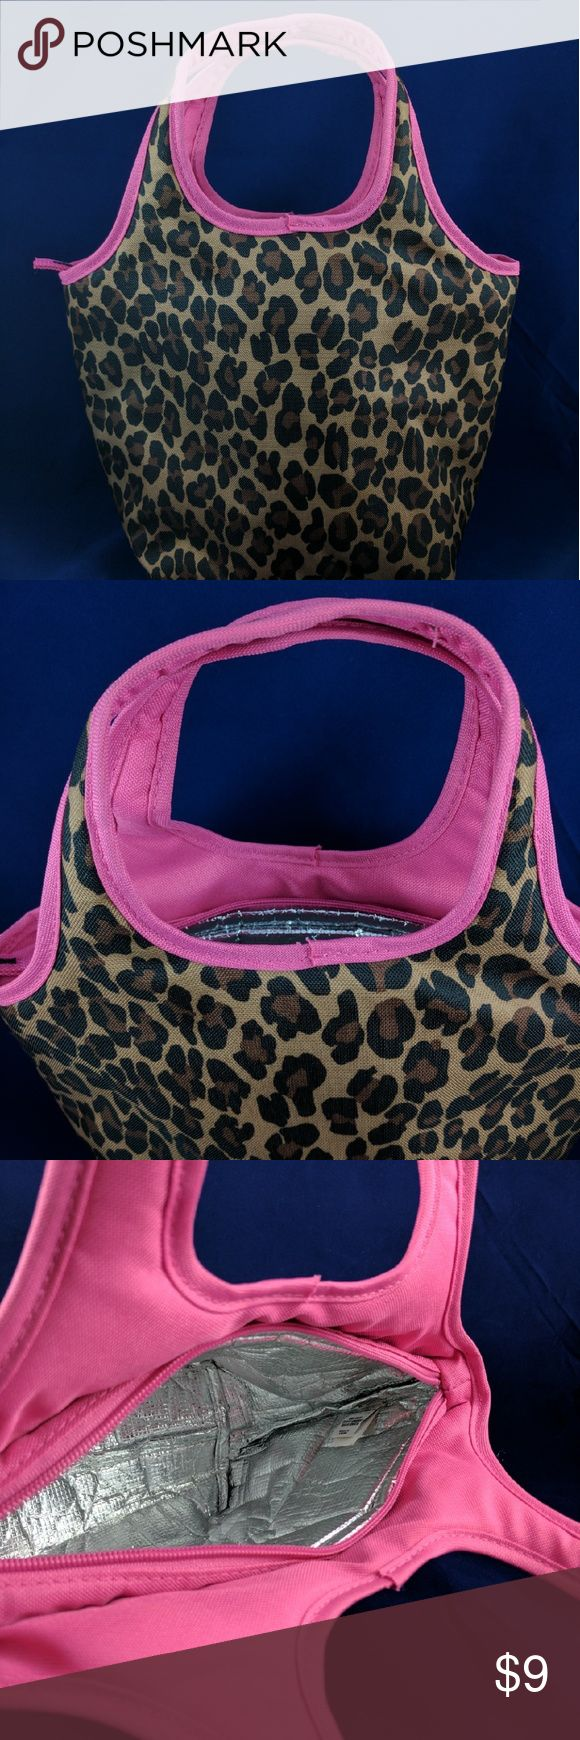 """Old Navy Insulated Bag Leopard Print Adorable insulated bag. Carry your lunch to work in style. Like new condition. Perfectly clean. Smoke free. 14"""" from base to top of handle. 12"""" across.5"""" deep. BC1 Old Navy Bags Totes"""